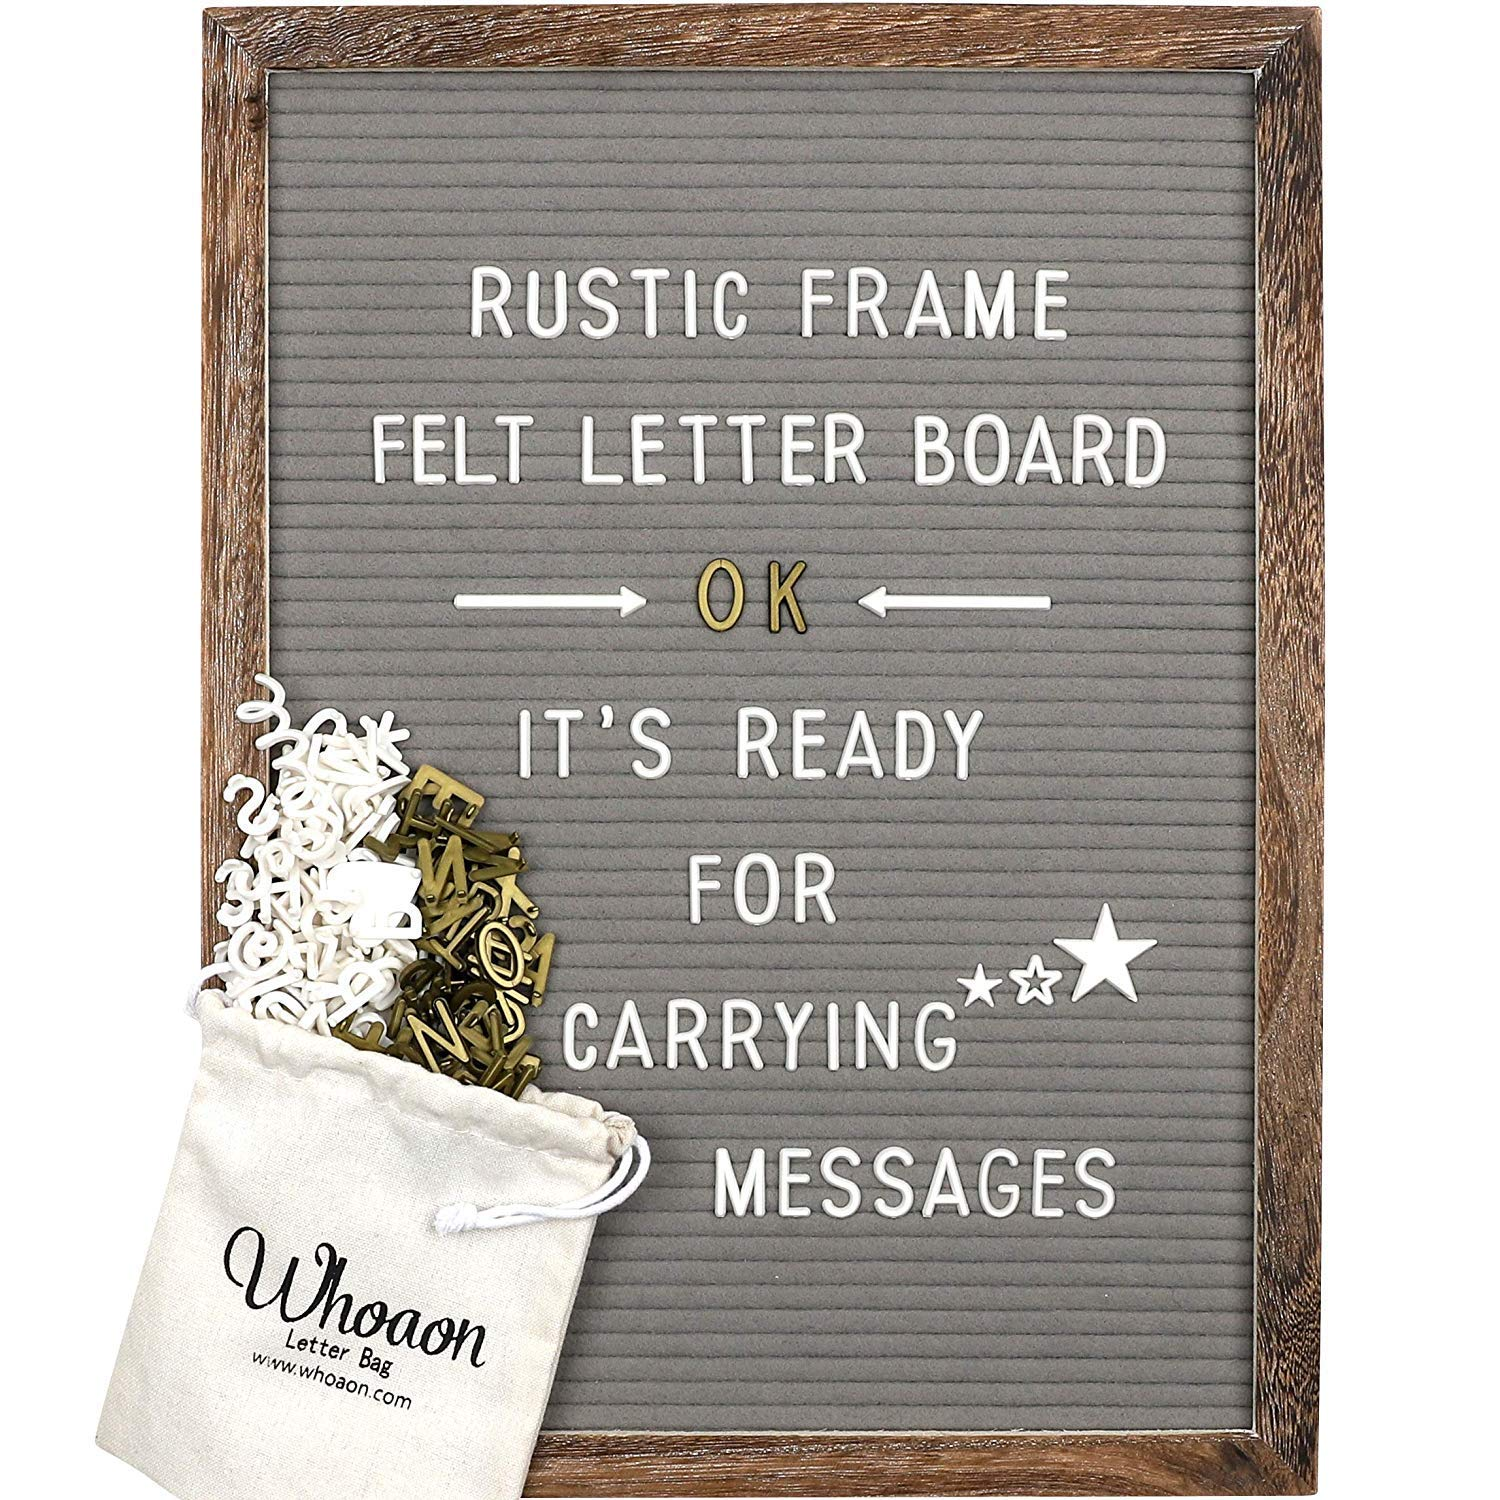 M favorite rustic Wood Farmhouse Frame Gray Felt Letter Board